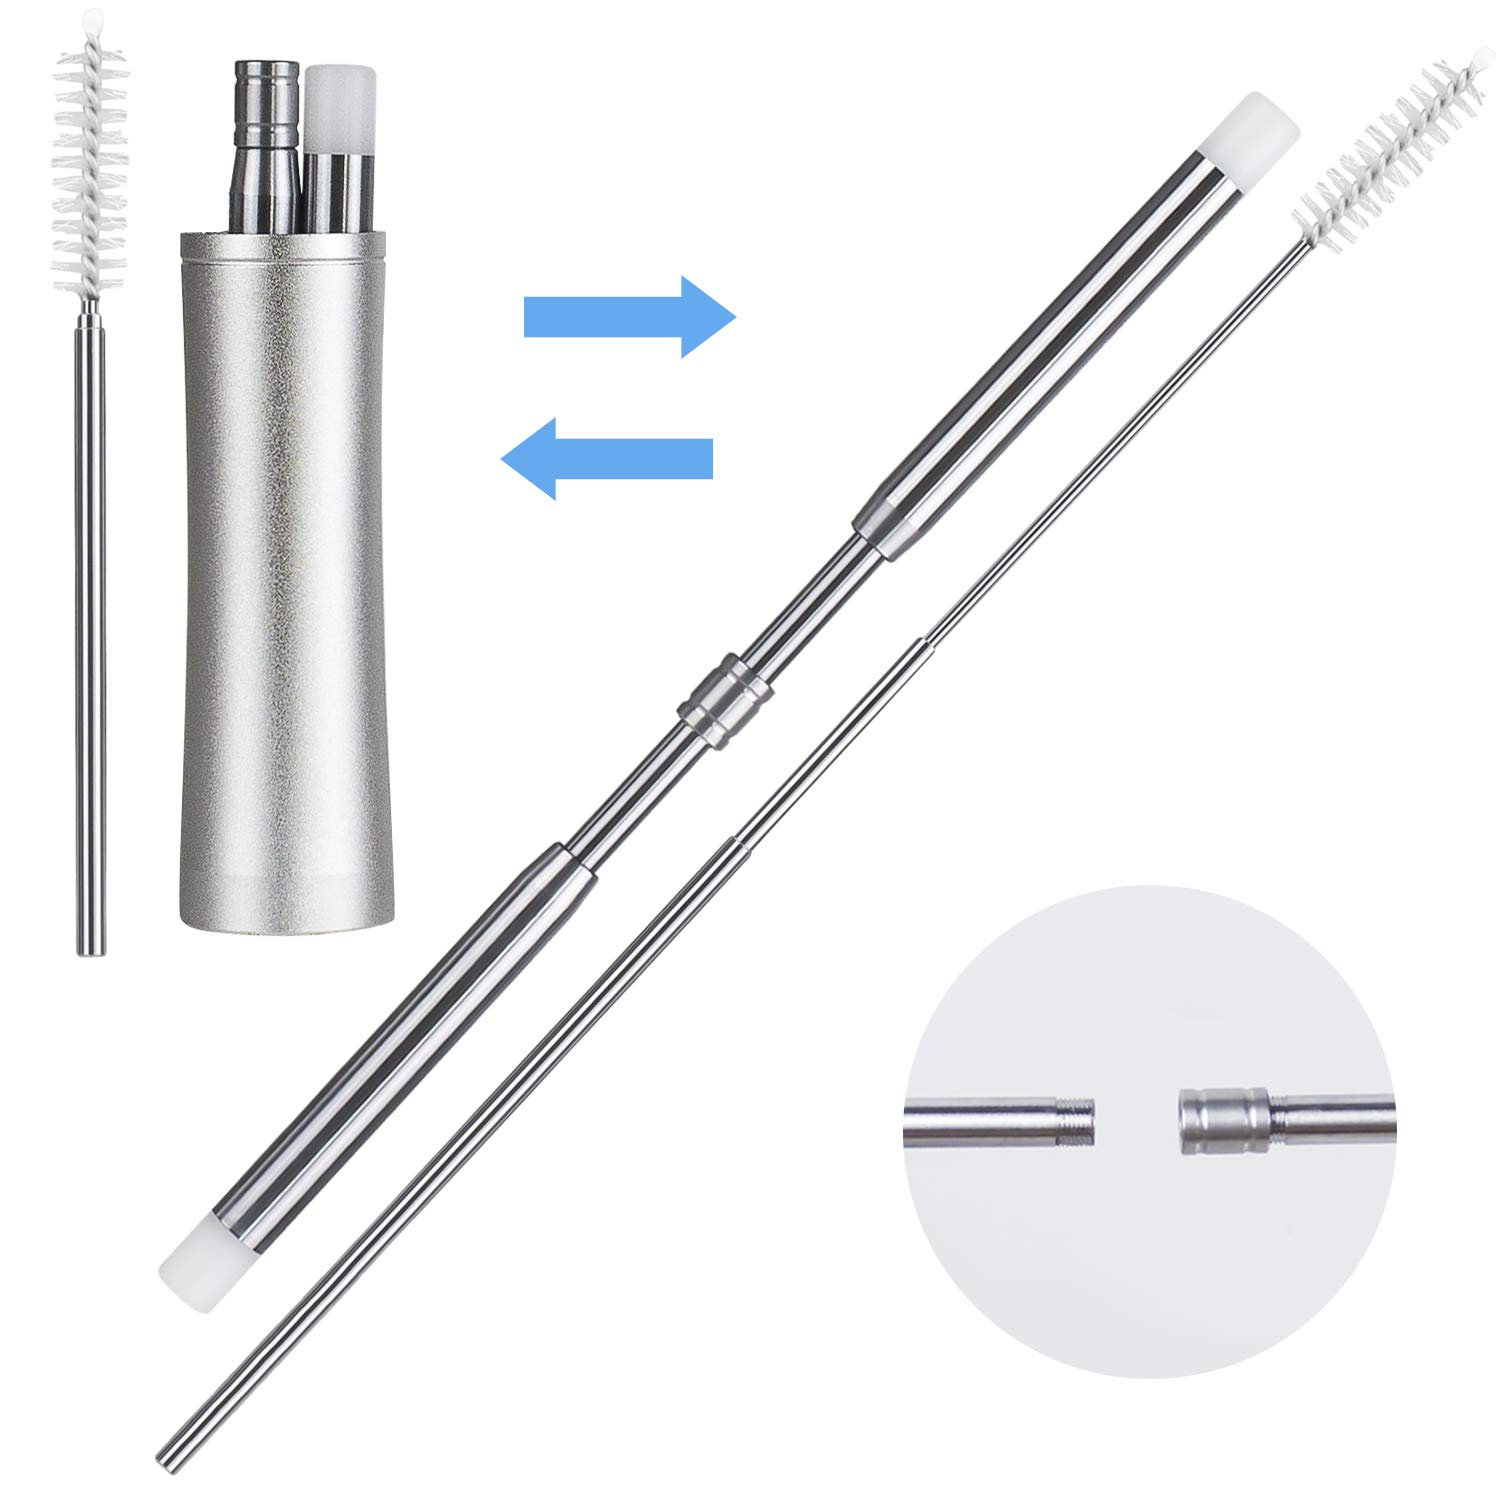 Portable Expandable and Retractable Stainless Steel Drinking Straw, Reusable Collapsible Metal Telescopic Drinking Straws, Pocket Size Metal Box with Keychain and Cleaning Brush for Travel and Home IBEET FBA1 I-Straws